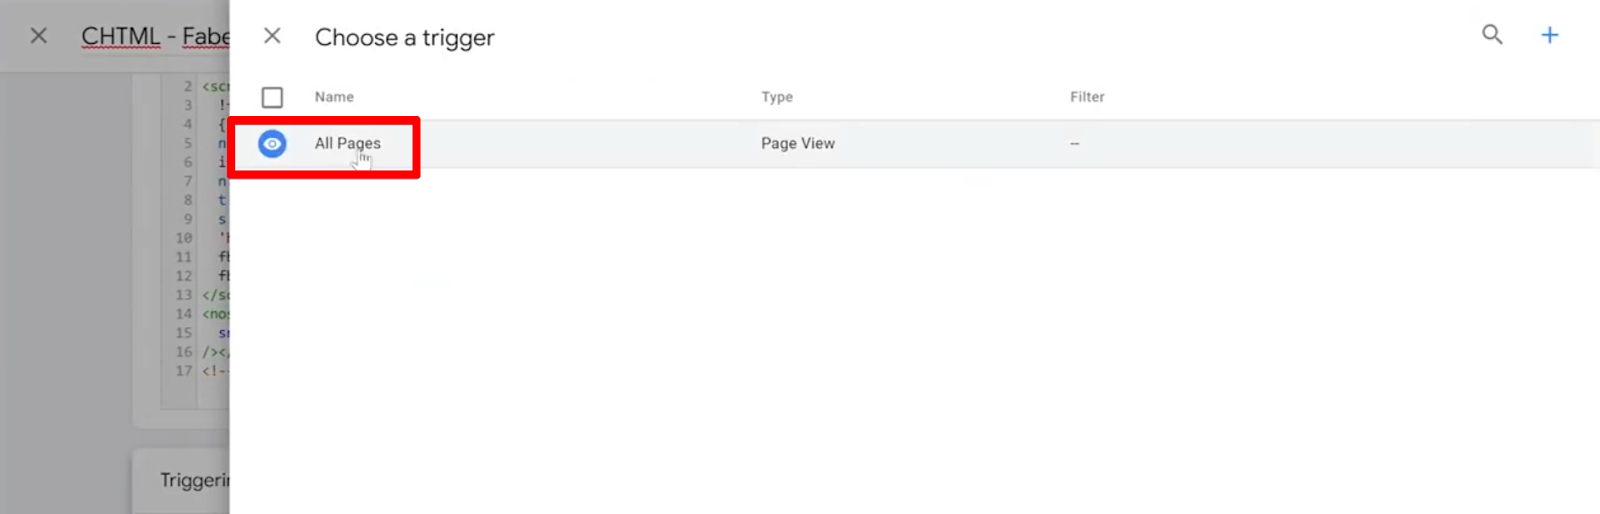 Select All Pages trigger for Base Facebook Pixel Tag